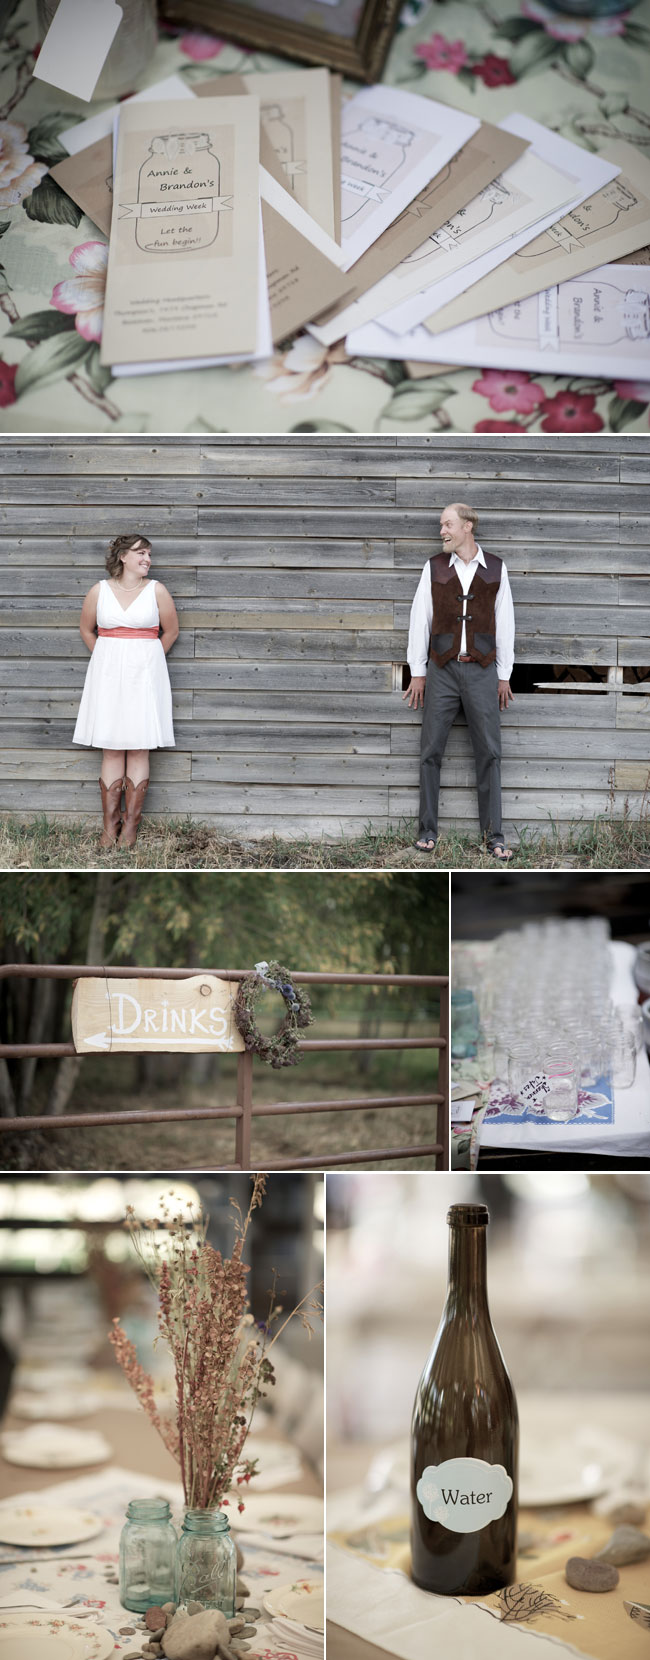 Fall wedding in Montana - bride and groom stand against wood barn, sign for drinks, mason jar and wine bottle decor